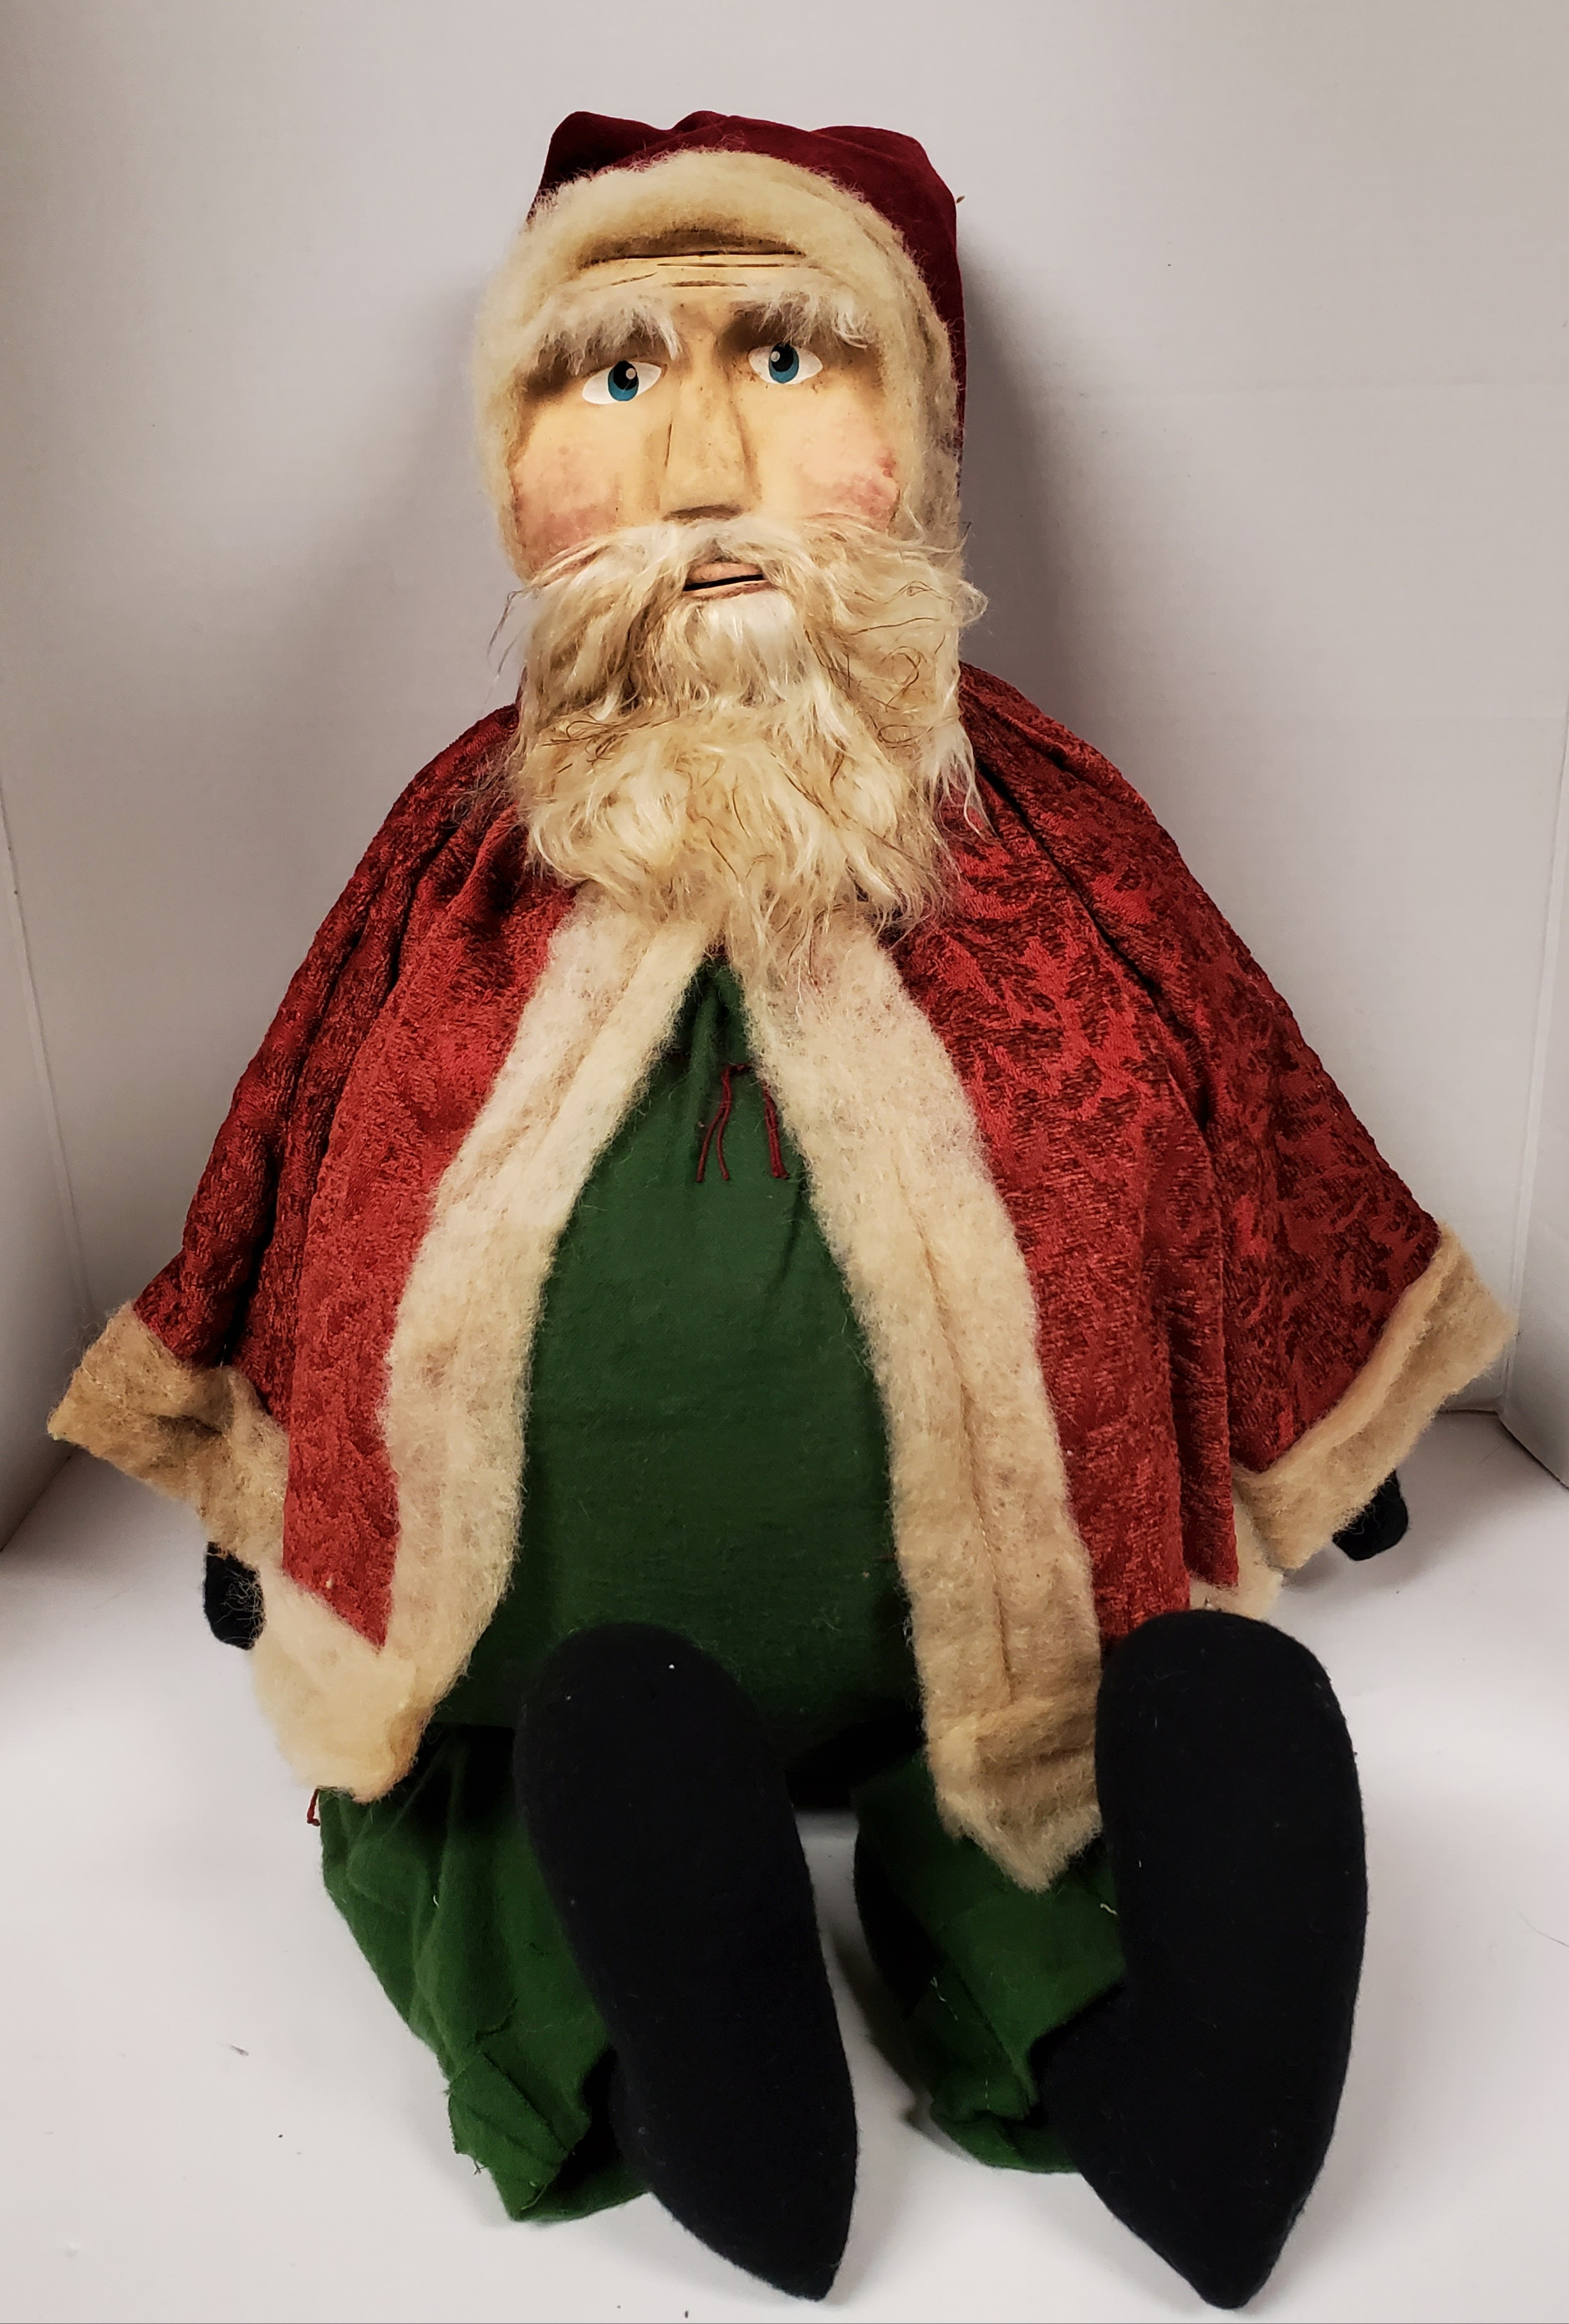 Clay Face Santa with Red Brocade Coat and Green Overalls